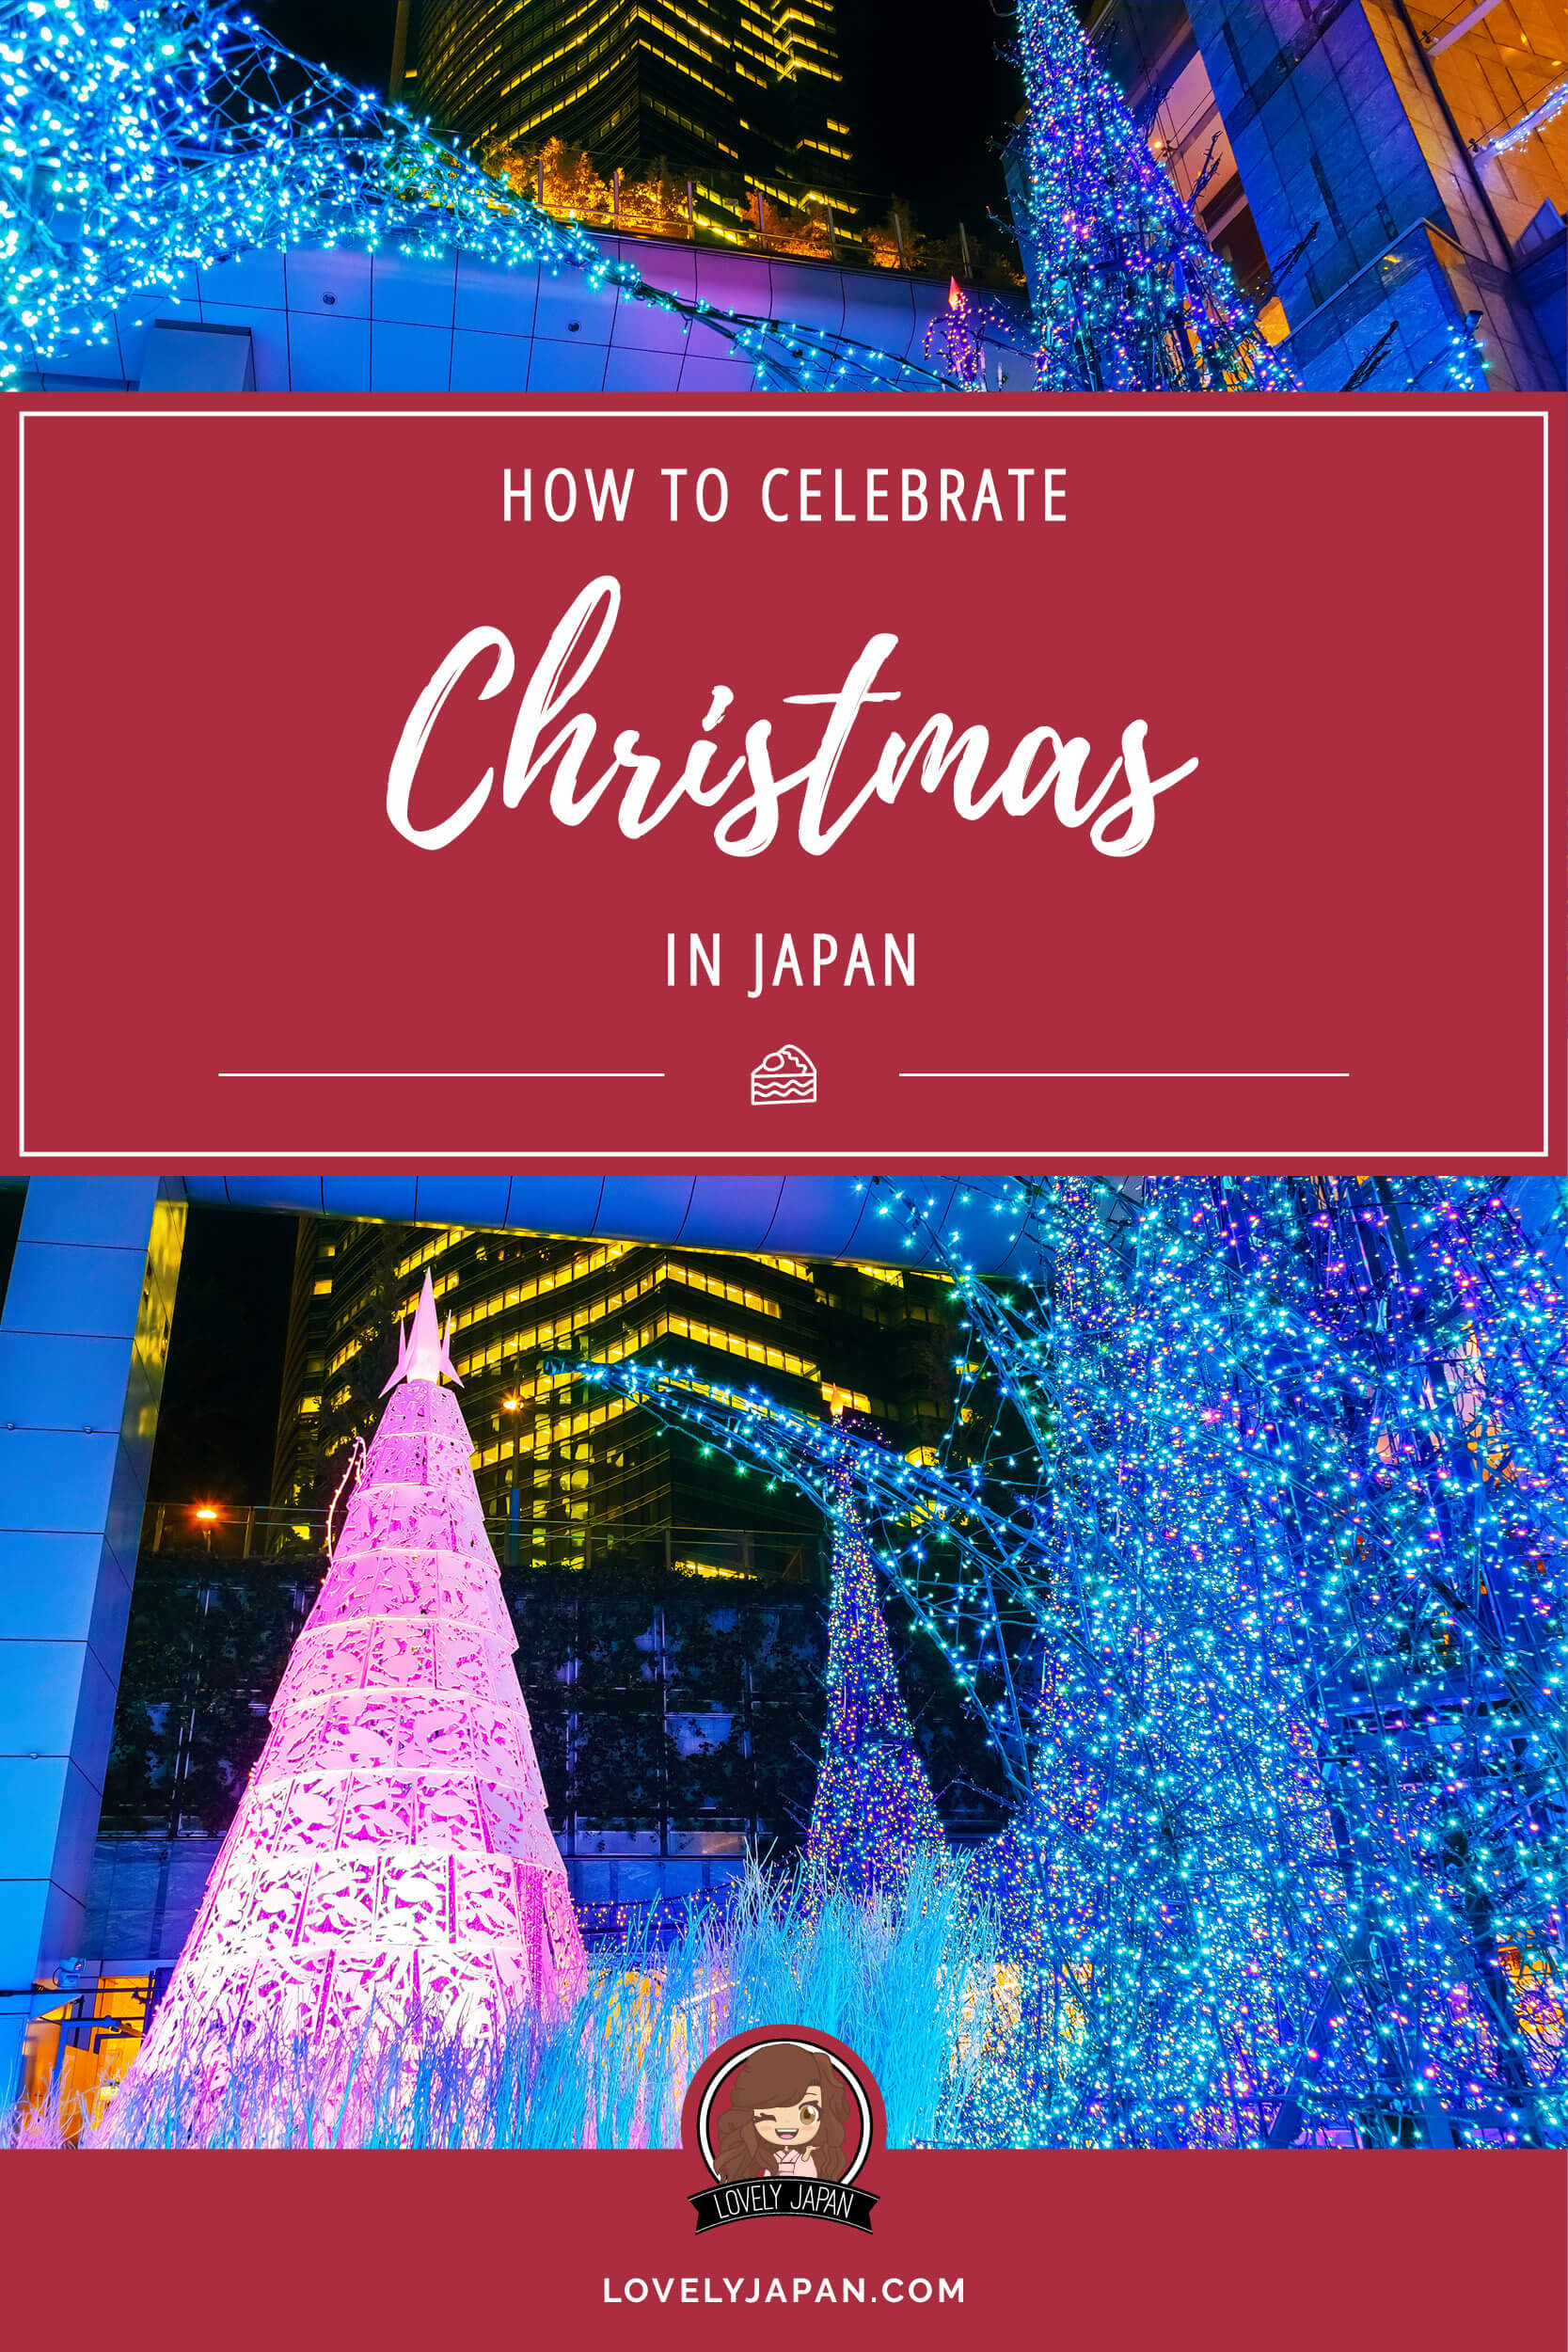 How to celebrate Christmas in Japan